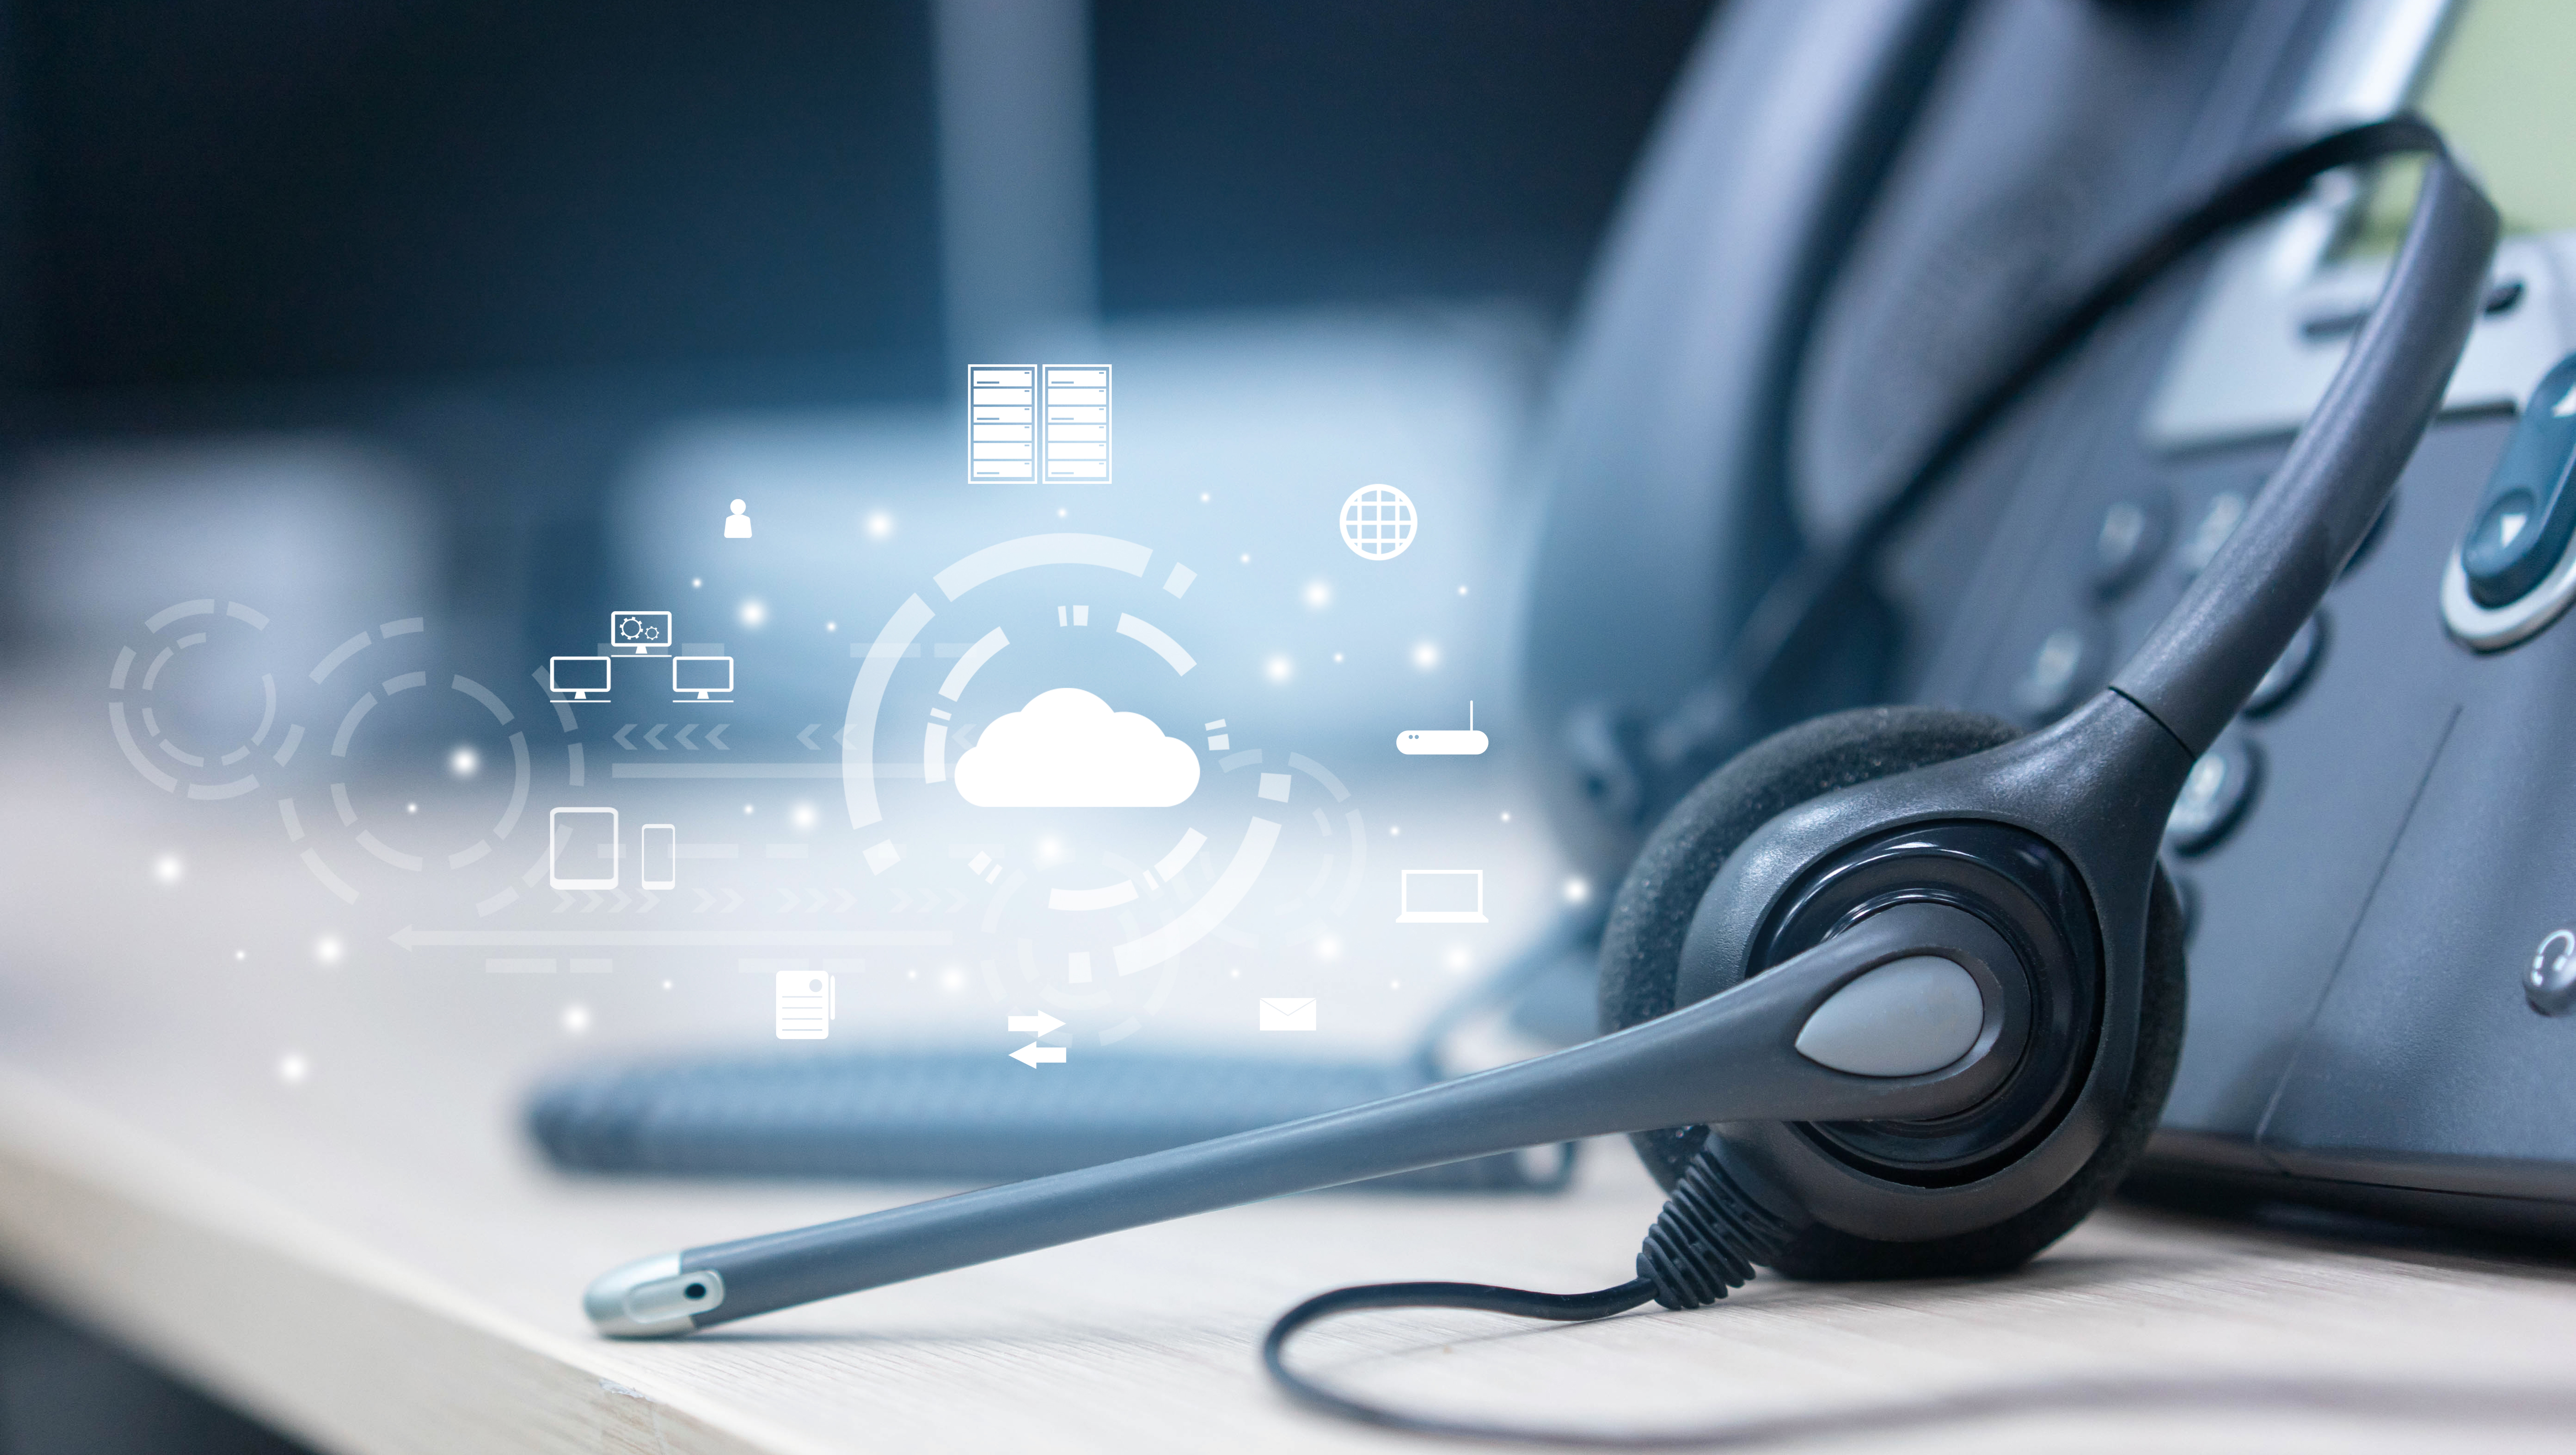 close up on headset telephone with cloud data center to synchronize on SaaS host server to working on system for futuristic technology and business marketing concept